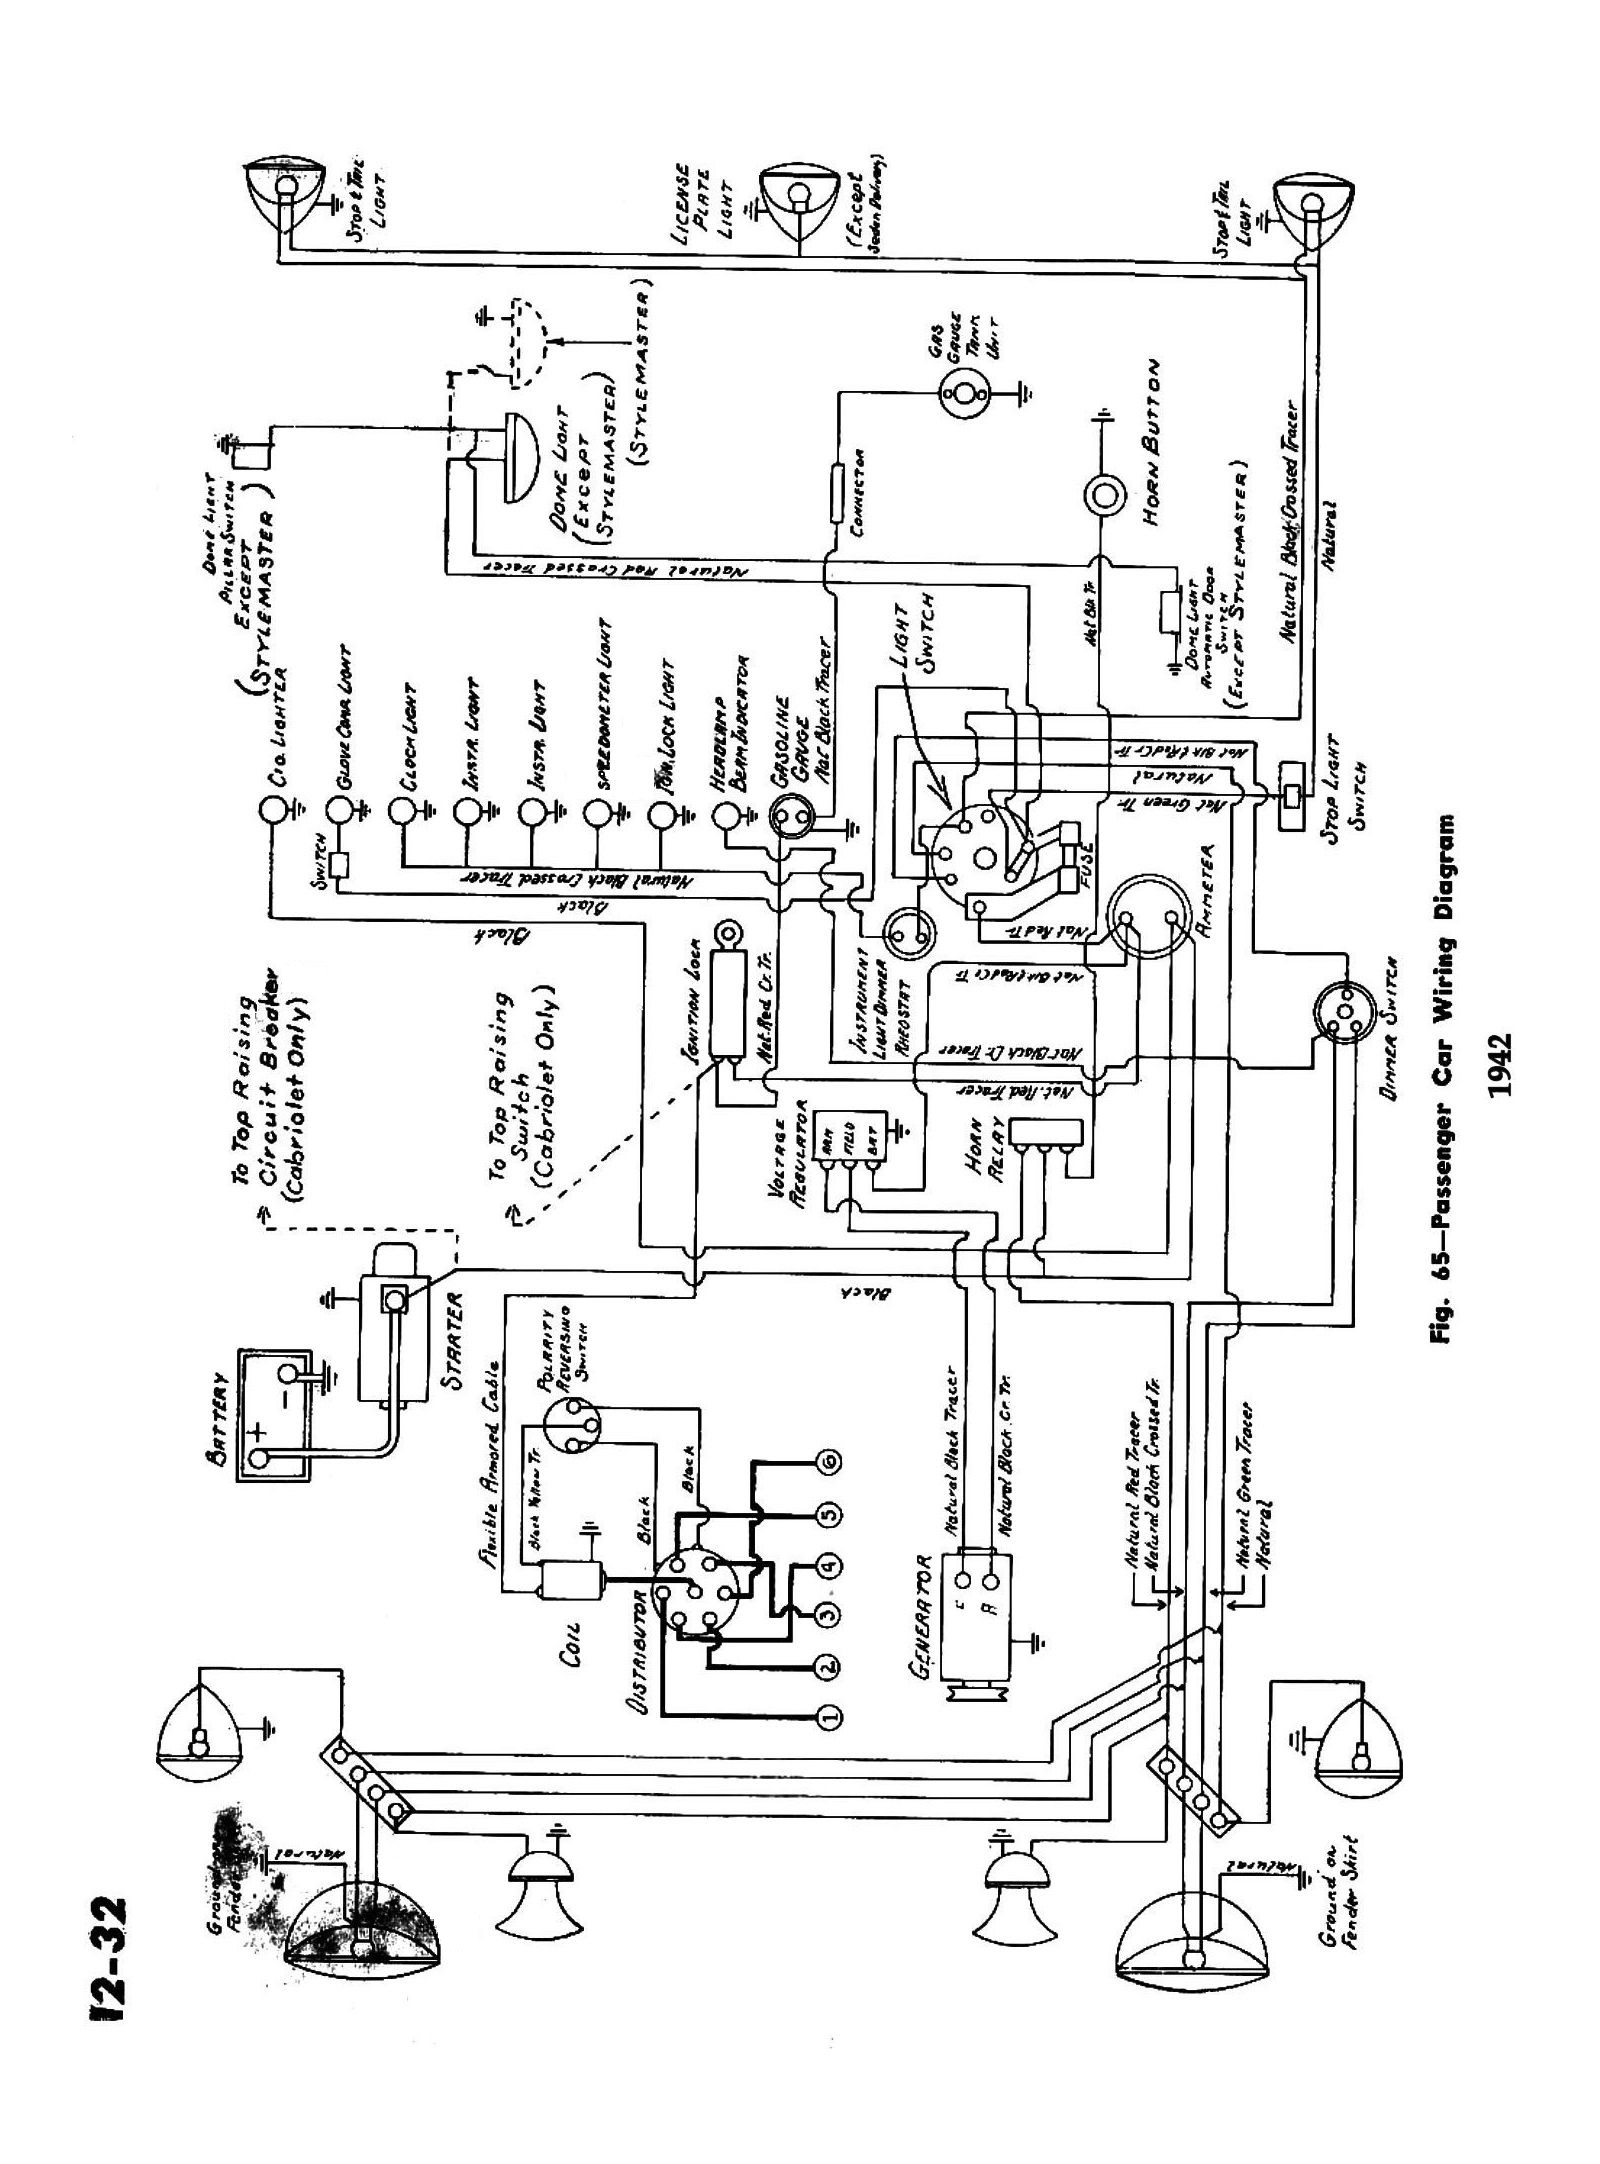 hight resolution of wiring diagram for 1952 crosley wiring diagram home crosley engine diagram